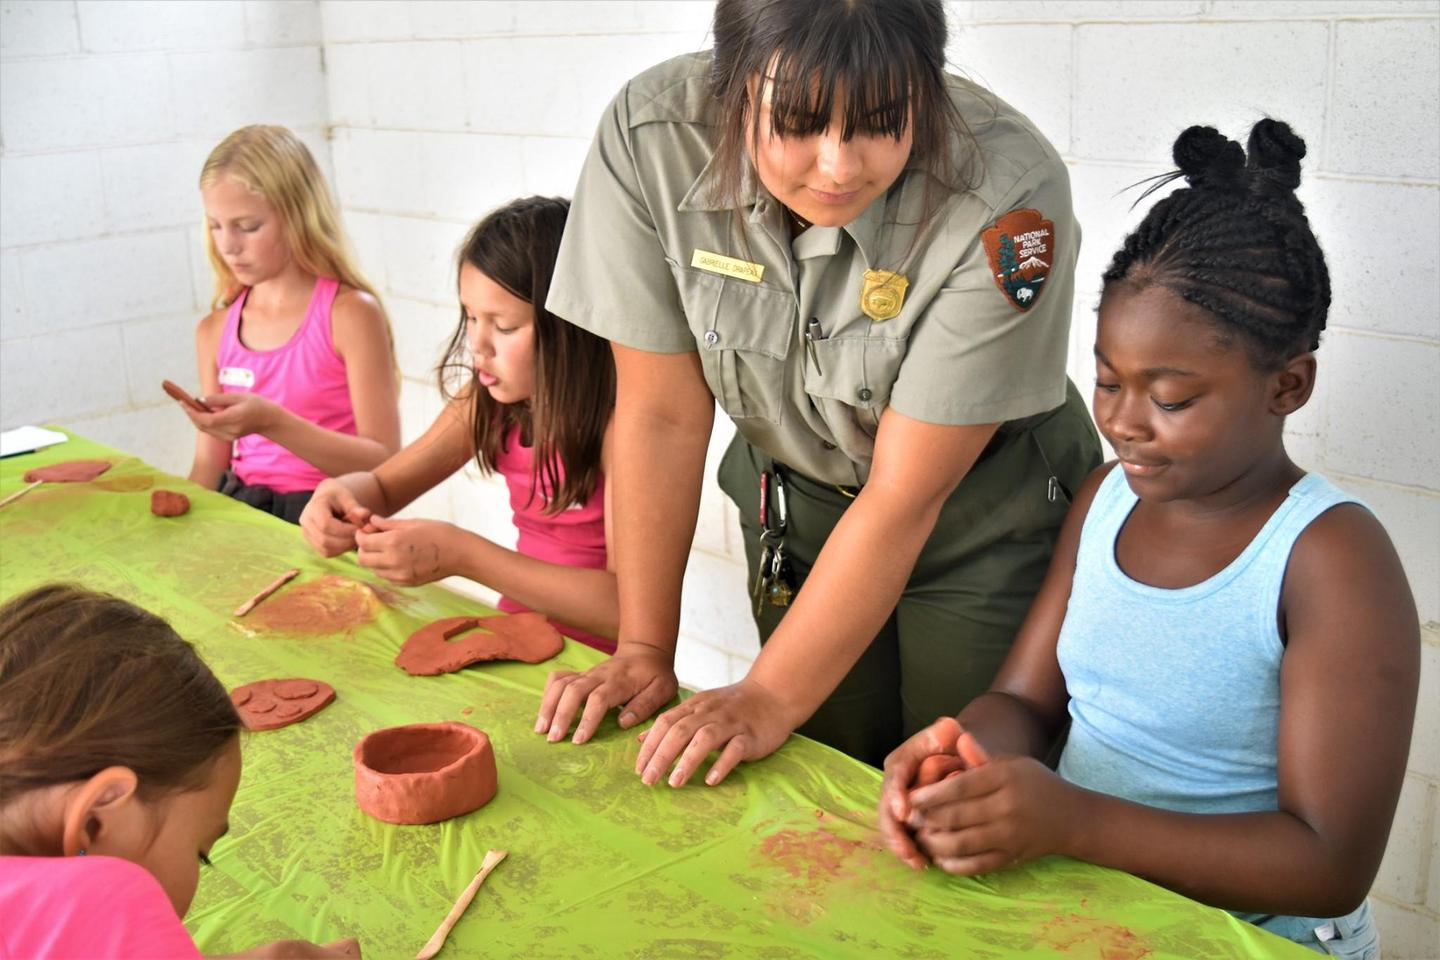 Jr. Ranger Camp ProgramsKids have opportunities throughout the summer for hands-on activities